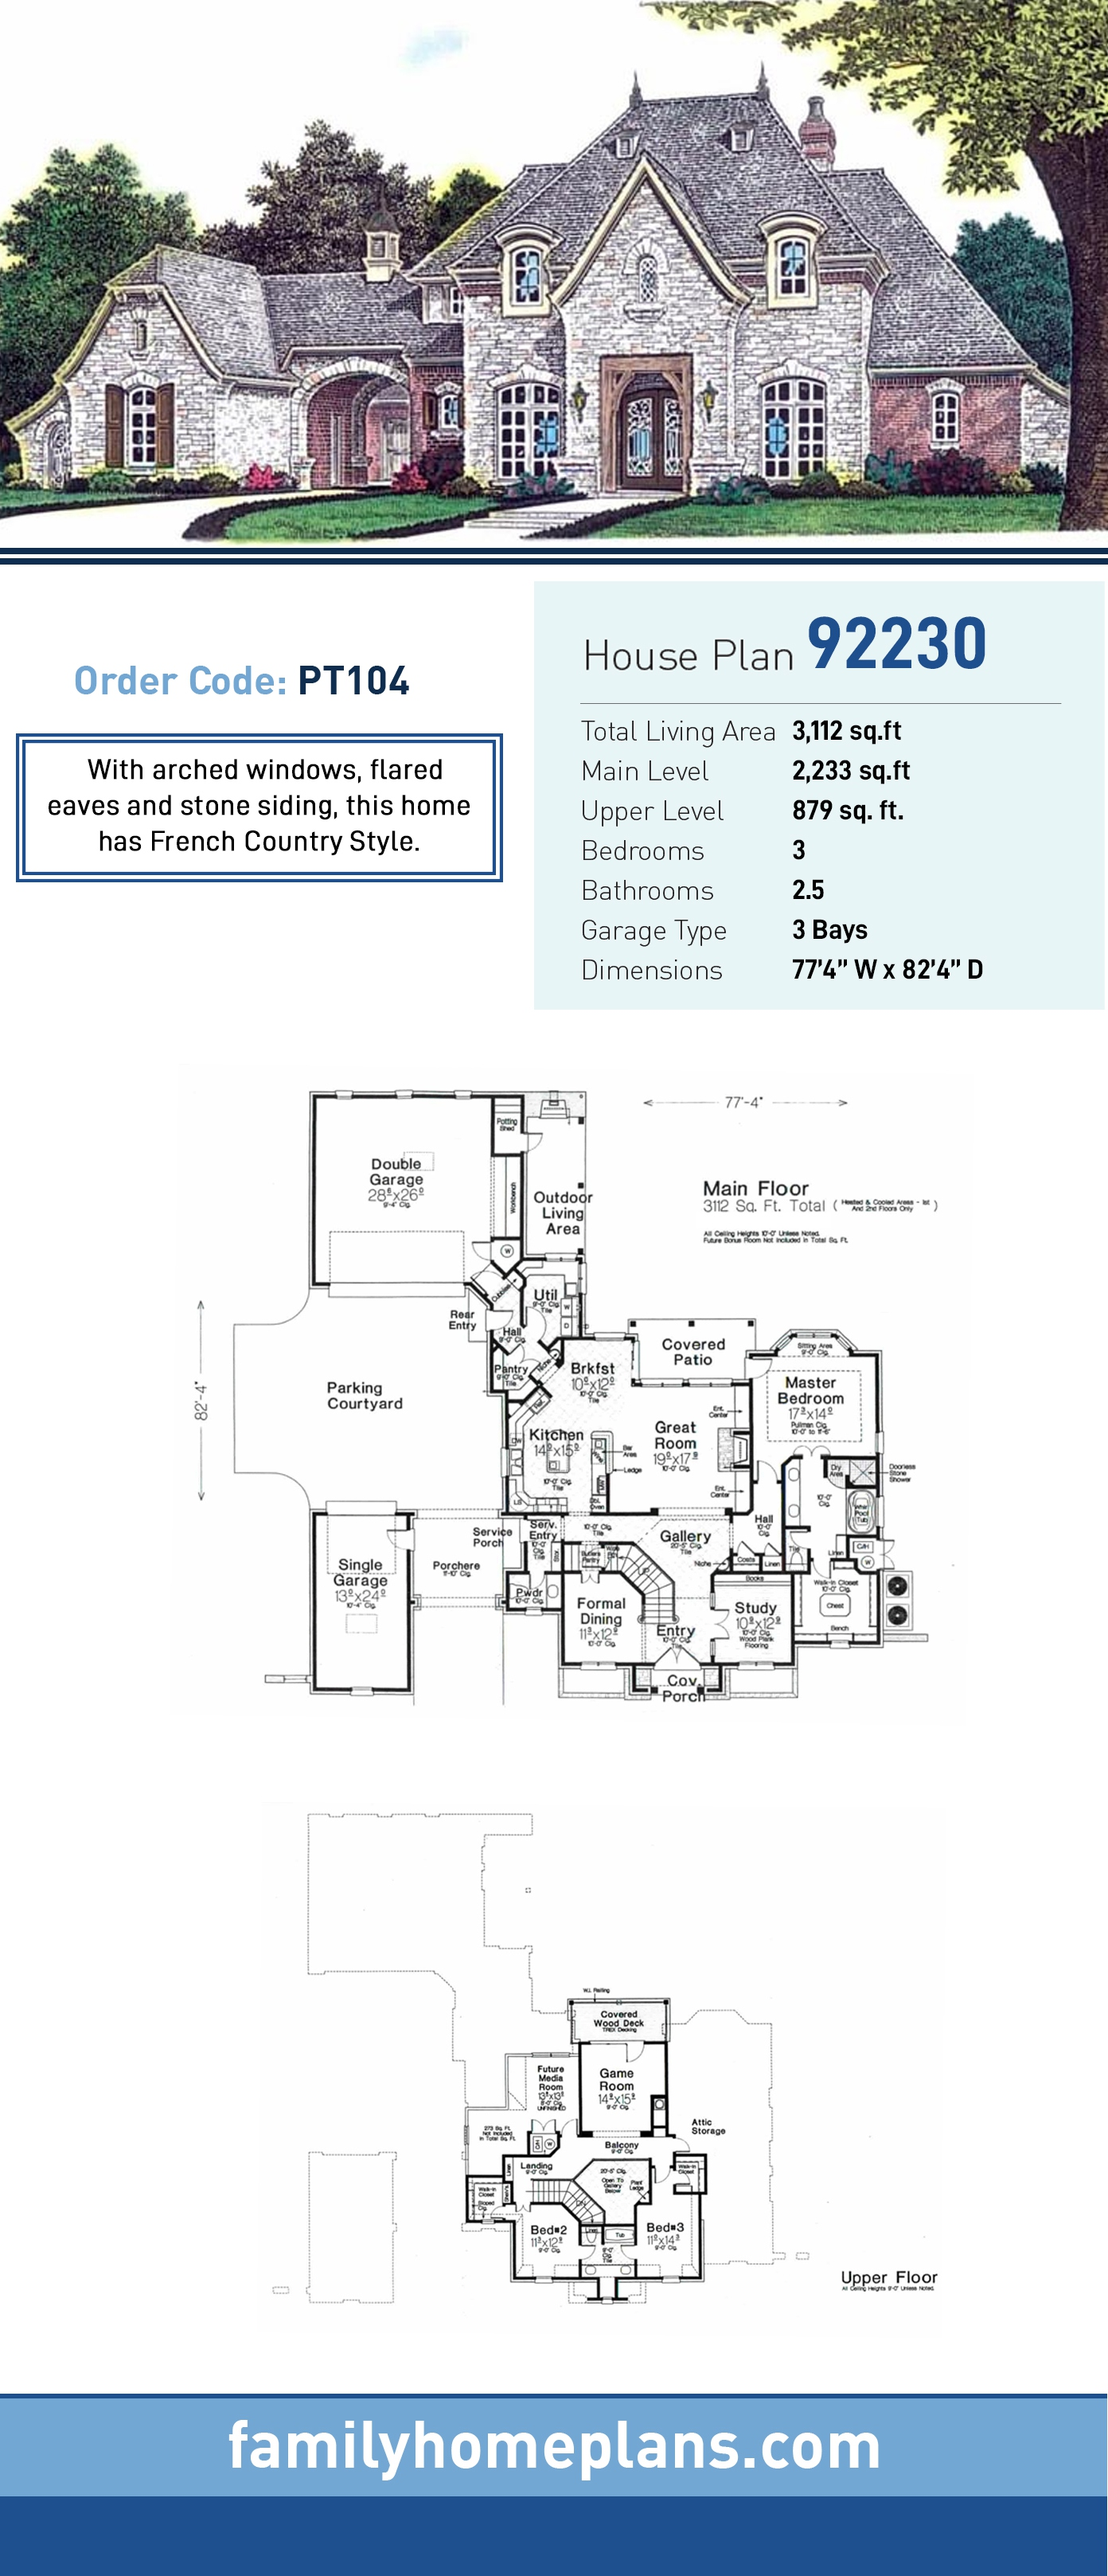 European, French Country House Plan 92230 with 3 Beds, 3 Baths, 3 Car Garage